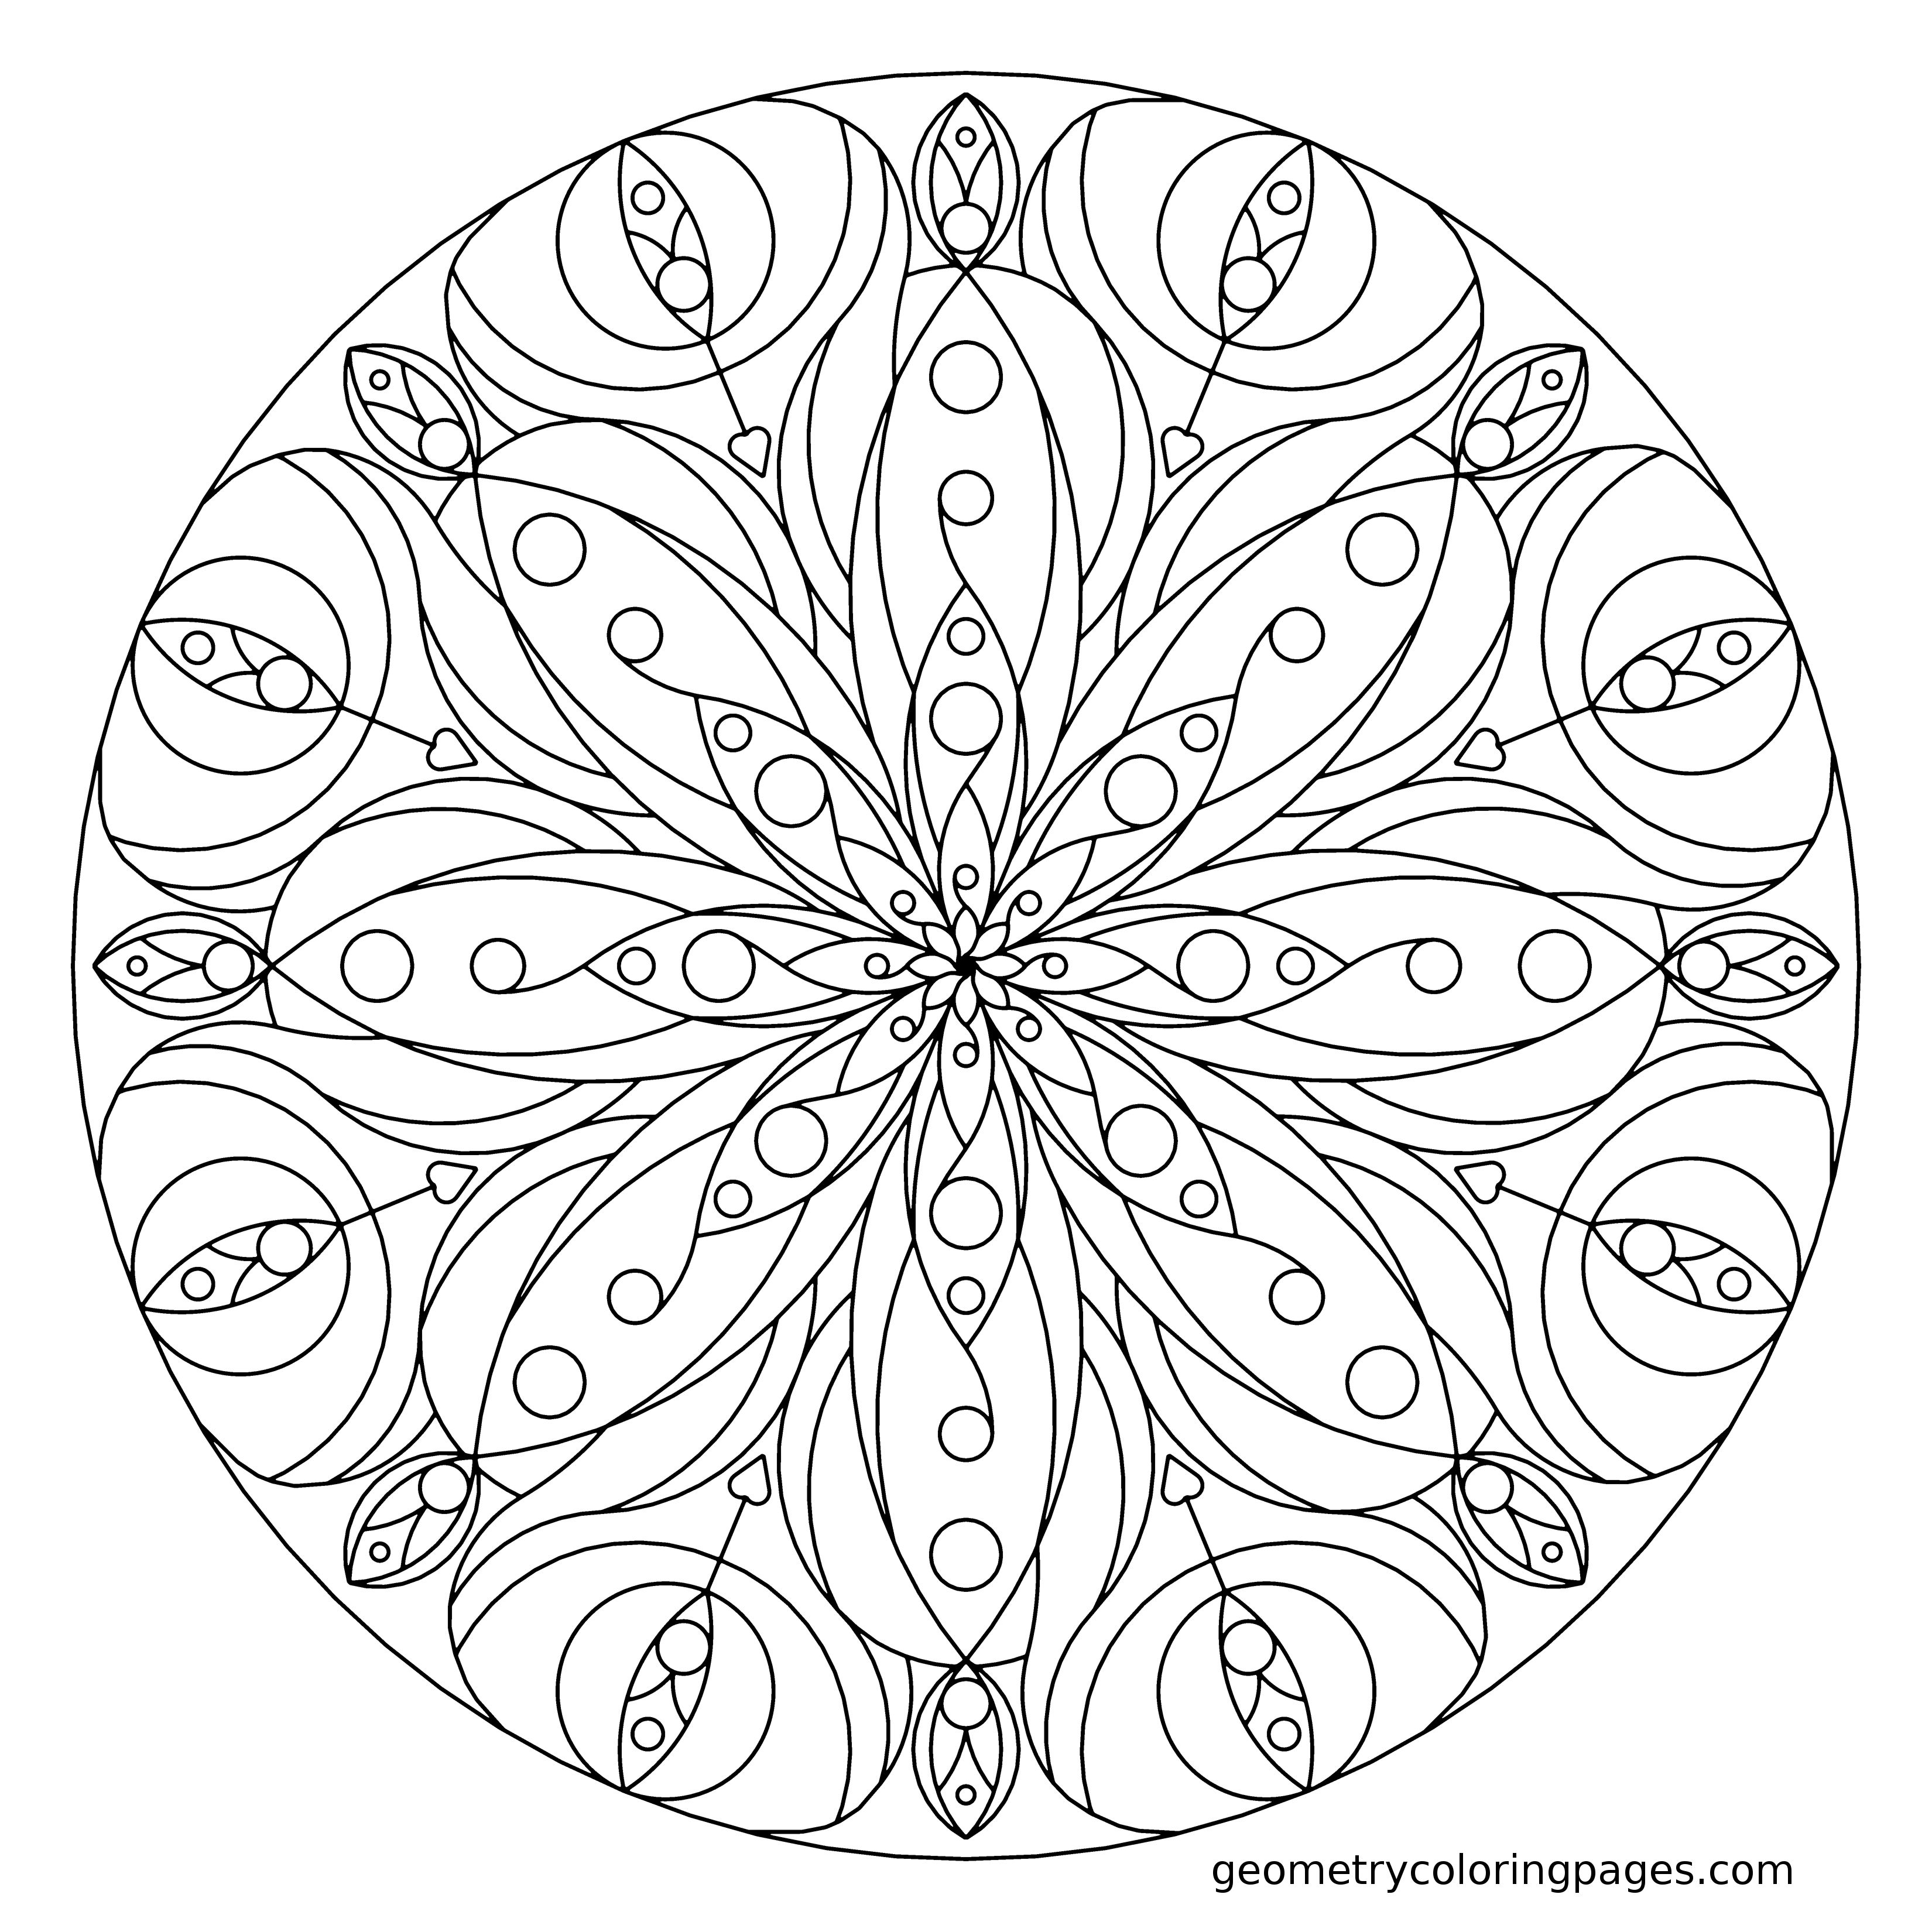 Mandala | Coloring Pages, Mandalas ...